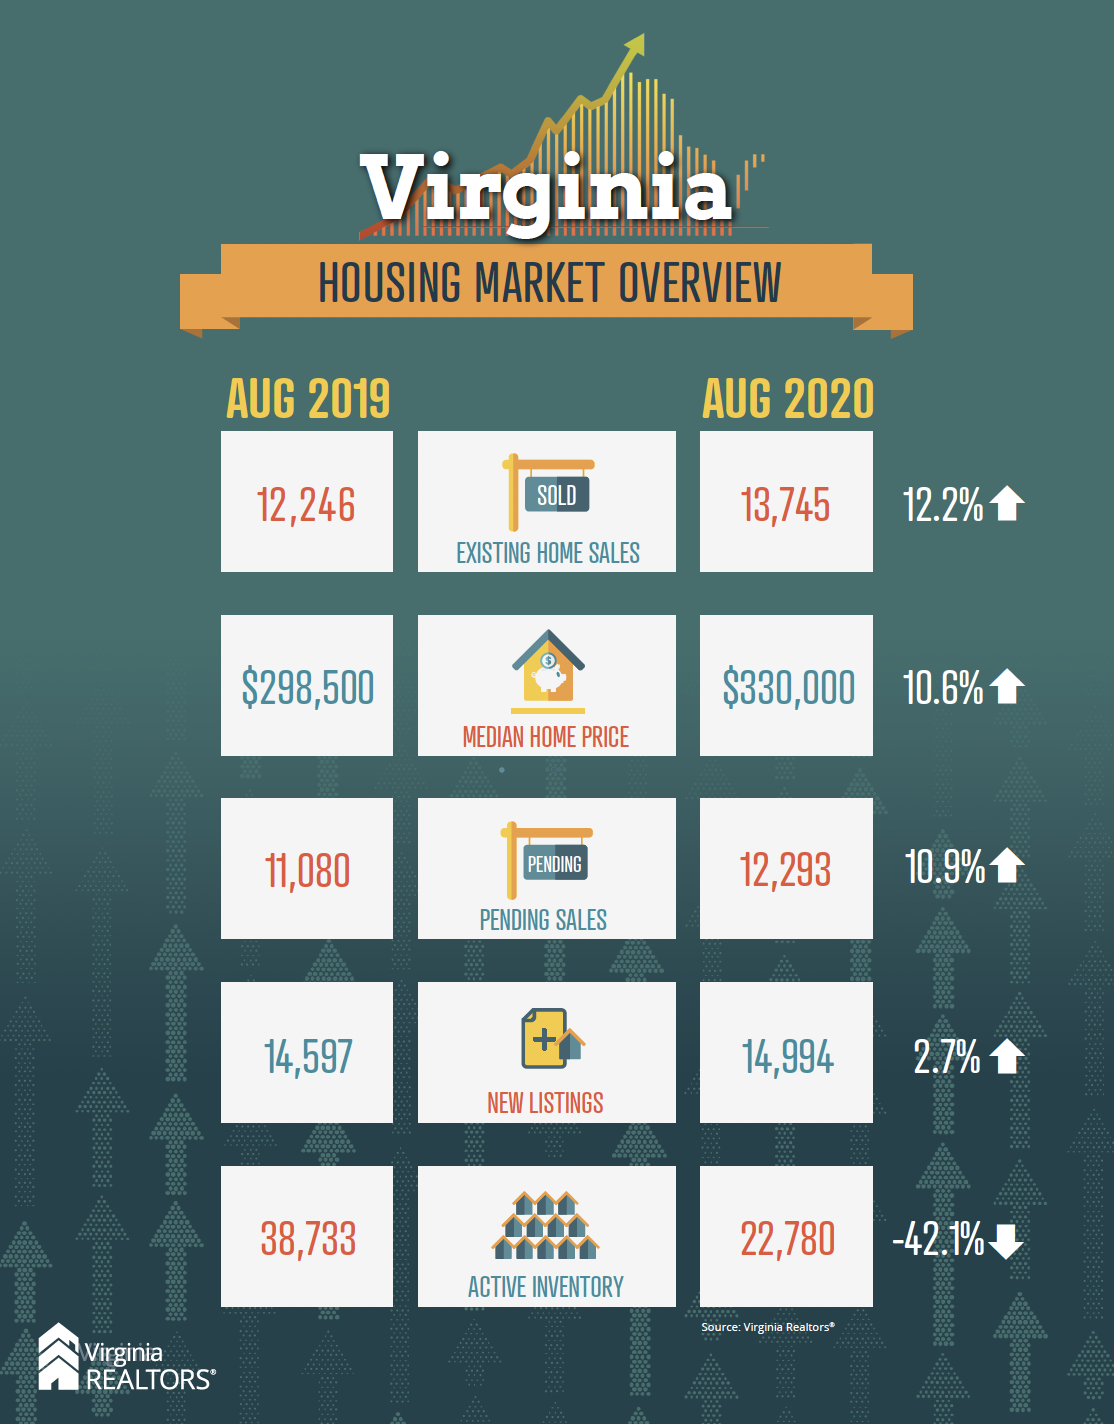 Aug 2020 Housing Market Overview